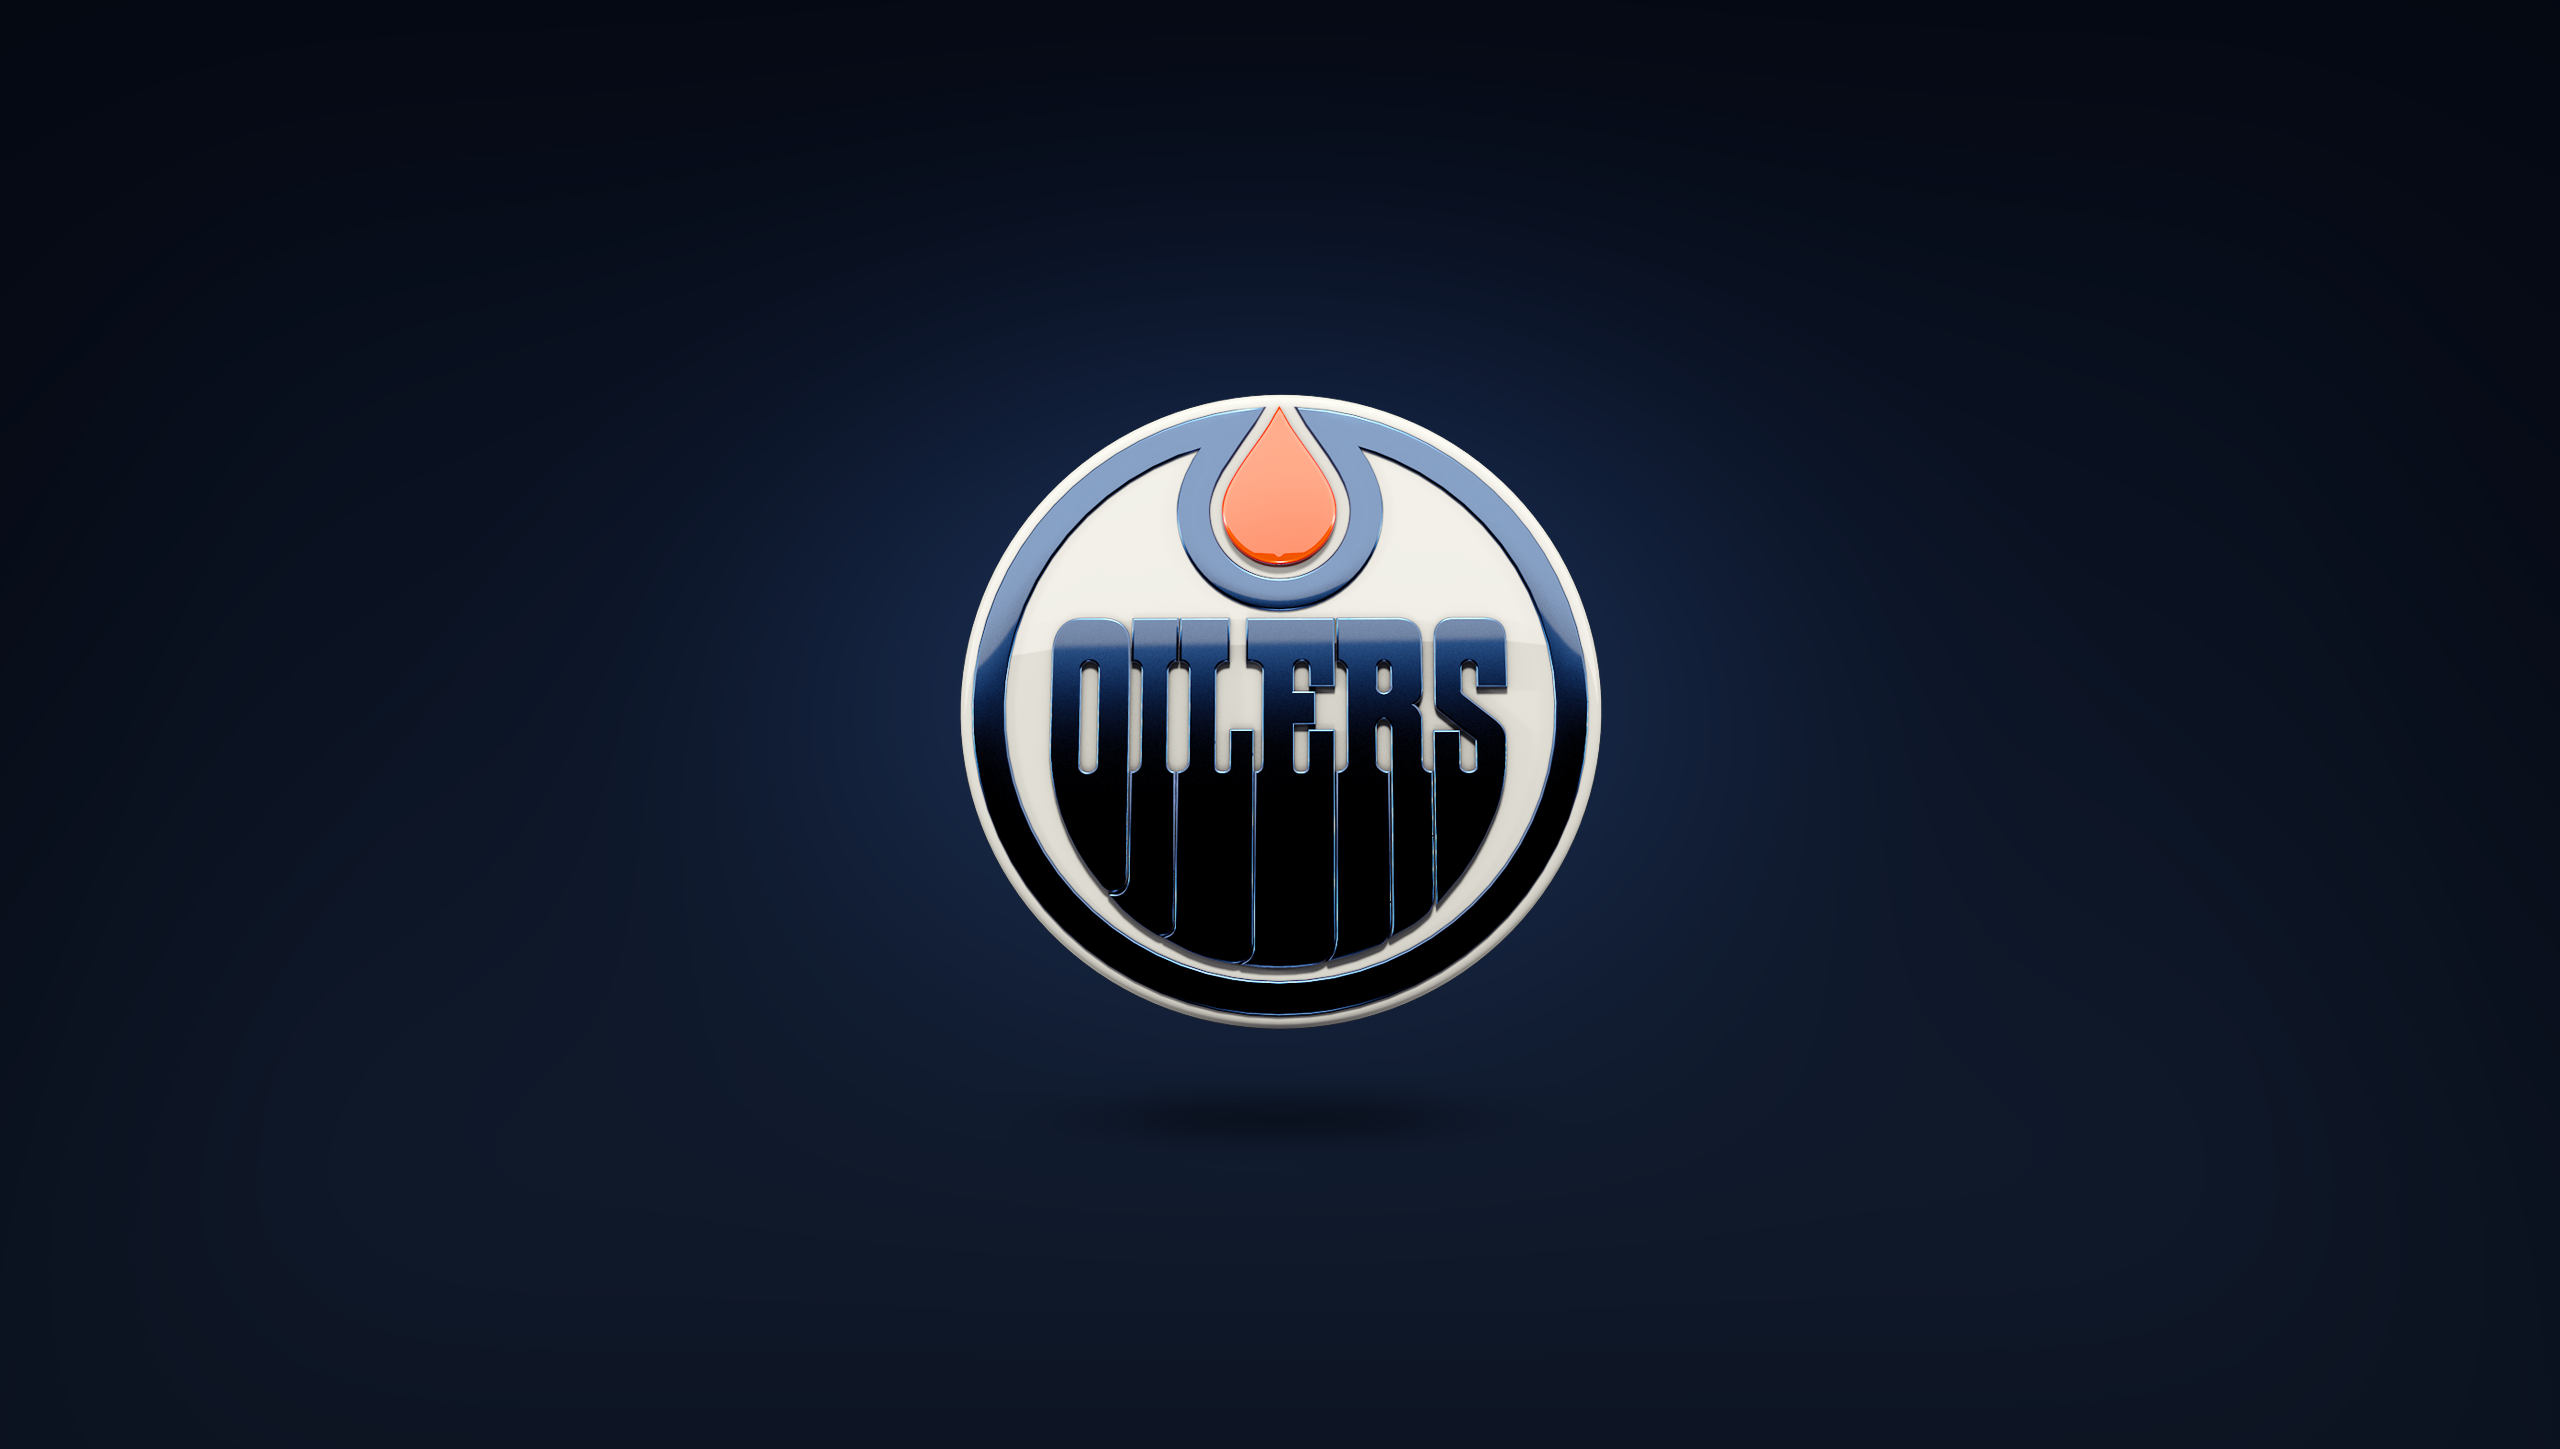 VRQ.42 Oilers, 2560x1449 px Oilers Wallpapers